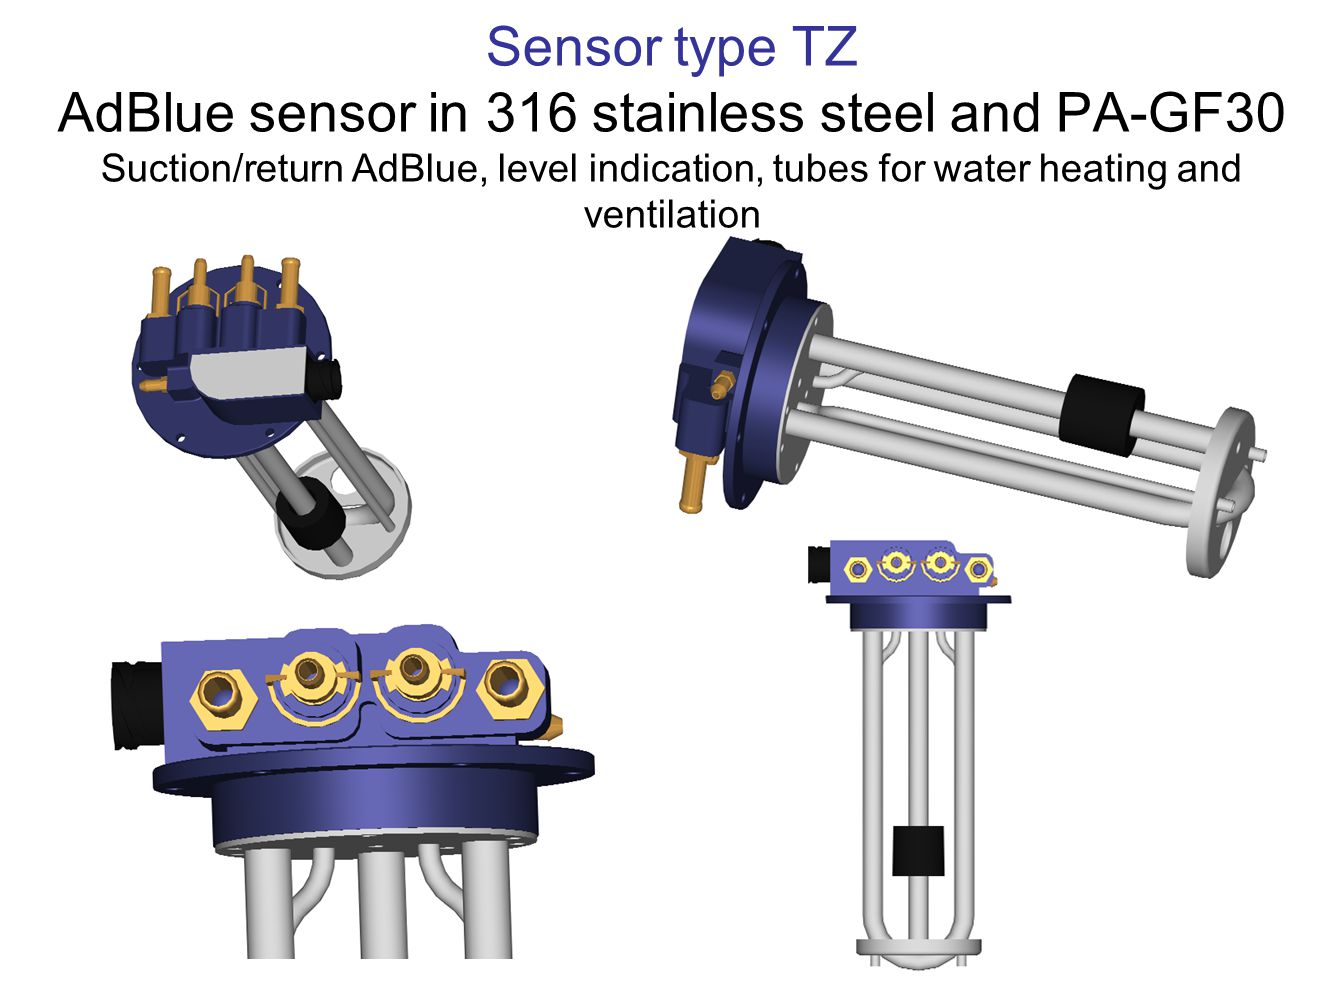 Sensor type TZ AdBlue sensor in 316 stainless steel and PA-GF30 Suction/return AdBlue, level indication, tubes for water heating and ventilation